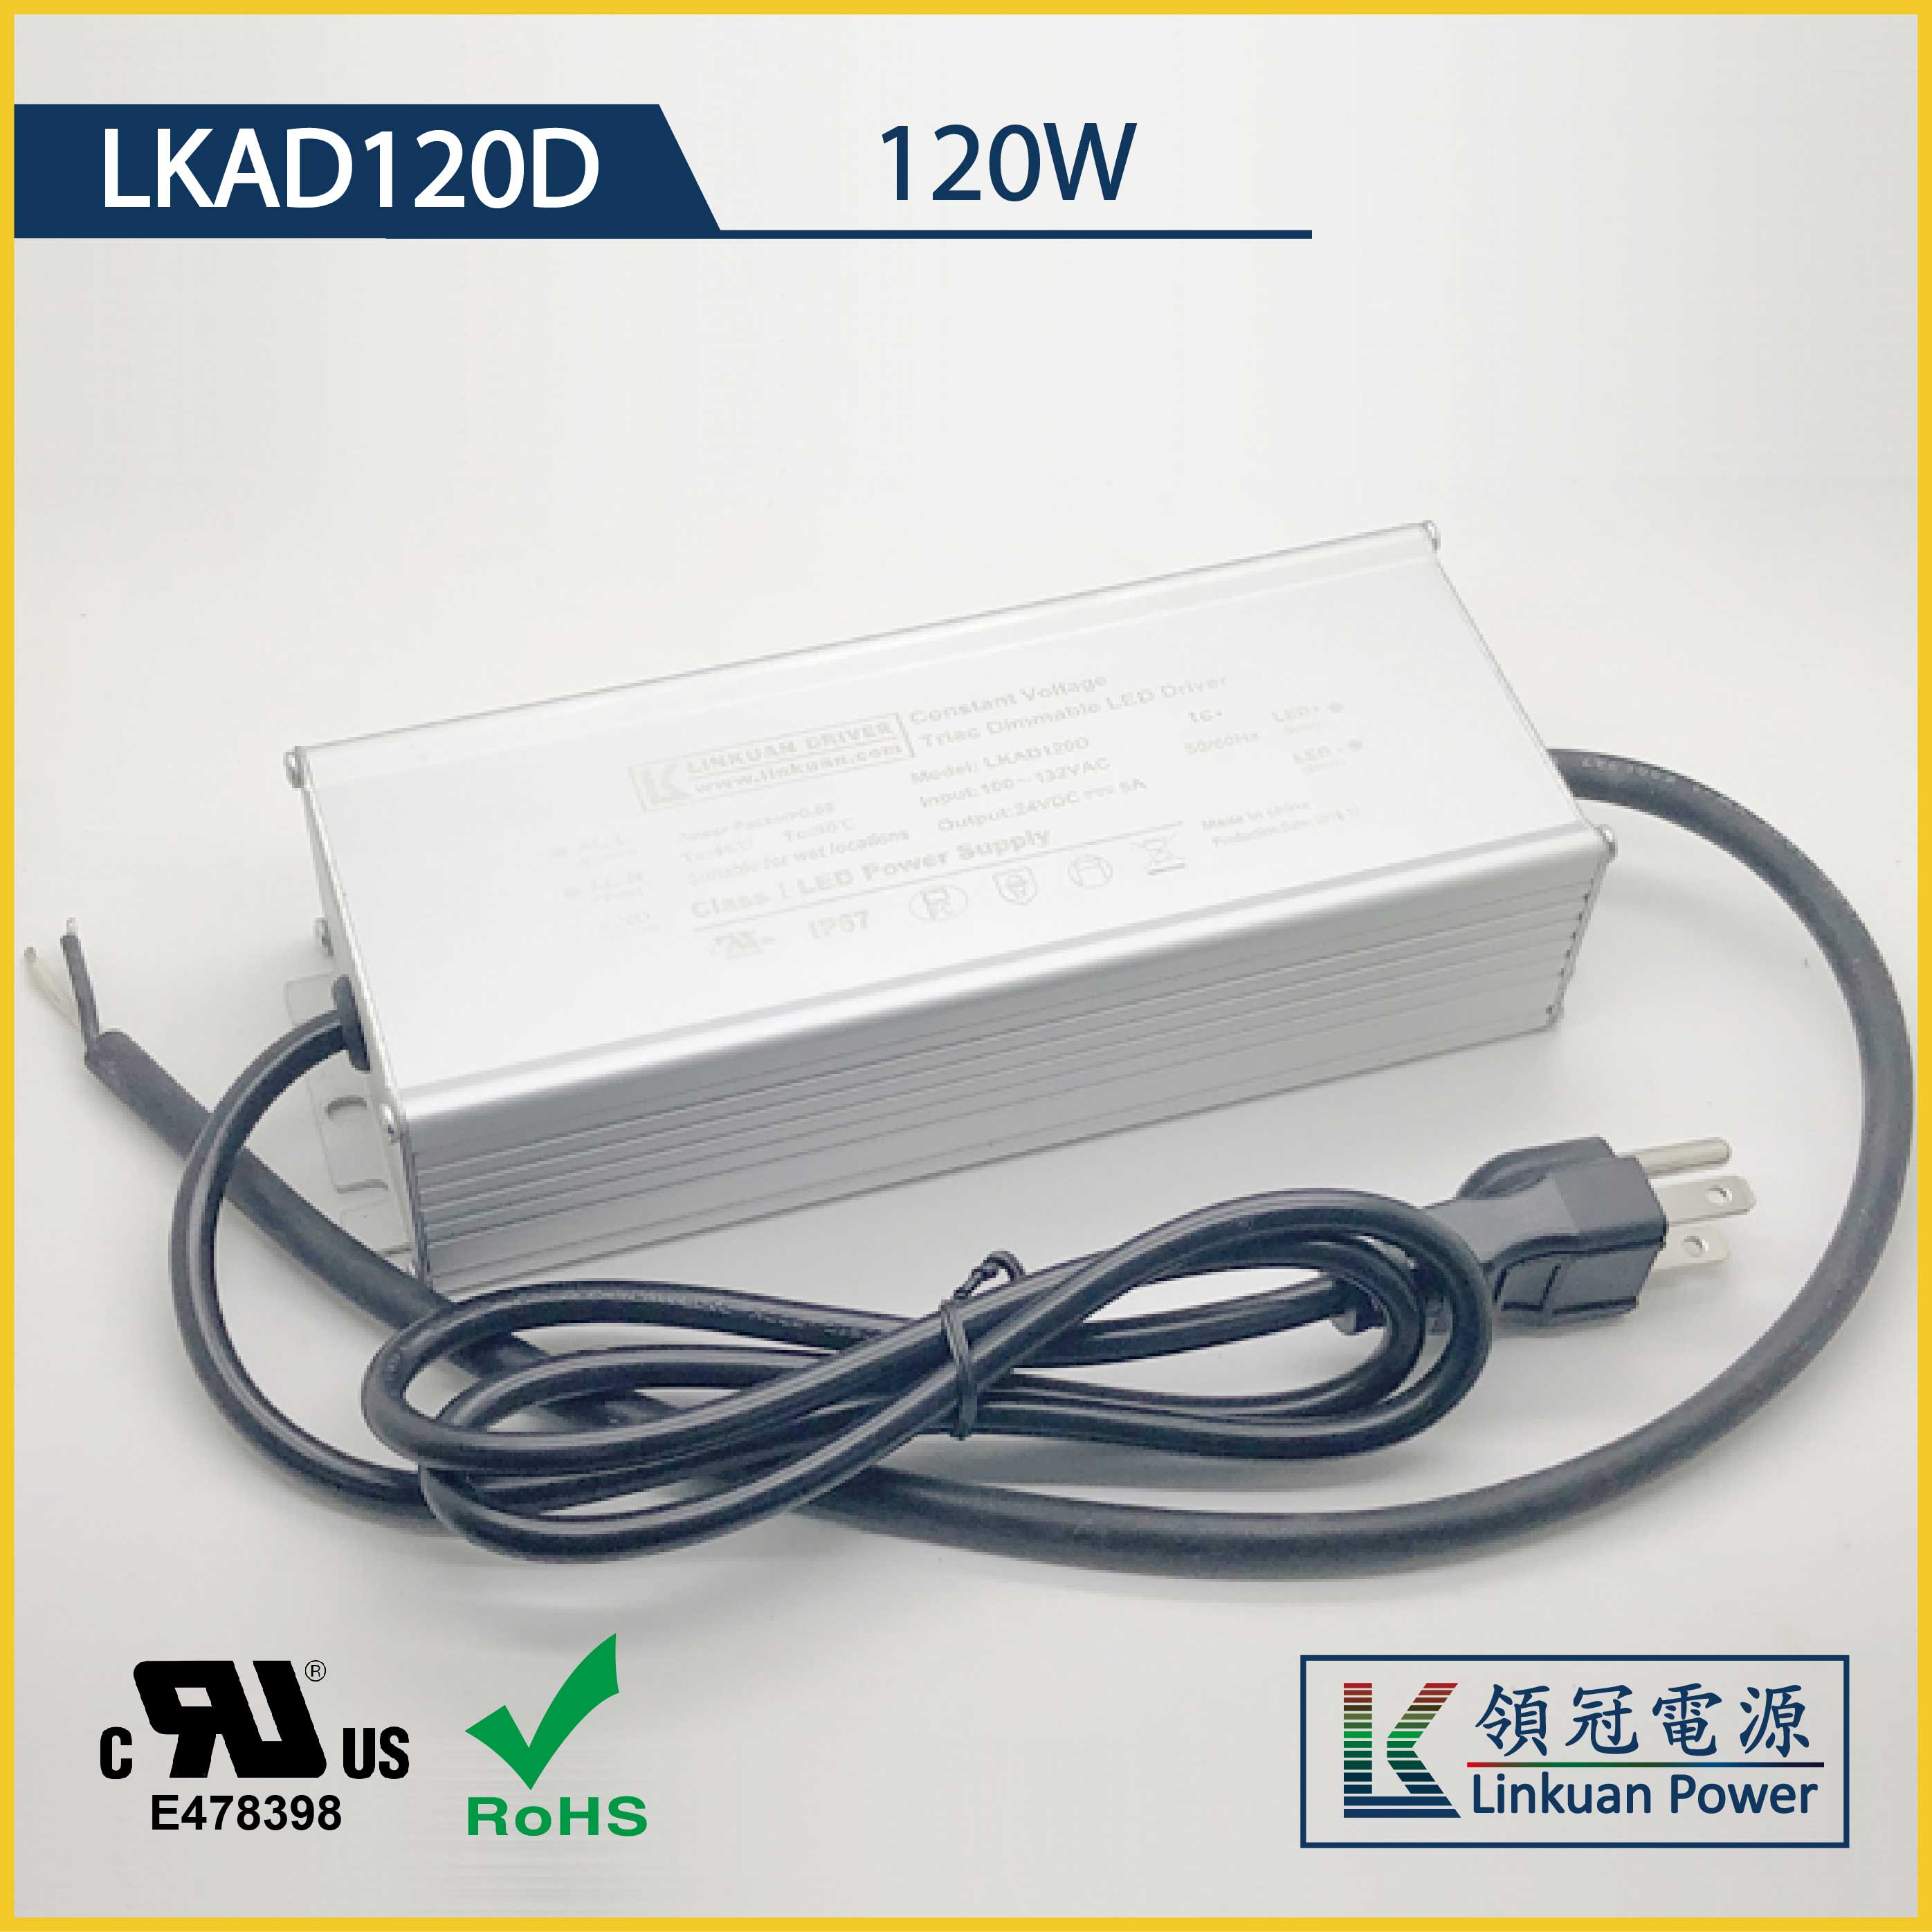 LKAD120D 120W Constant Voltage 12/24V 10A/5A Triac Dimming LED drivers